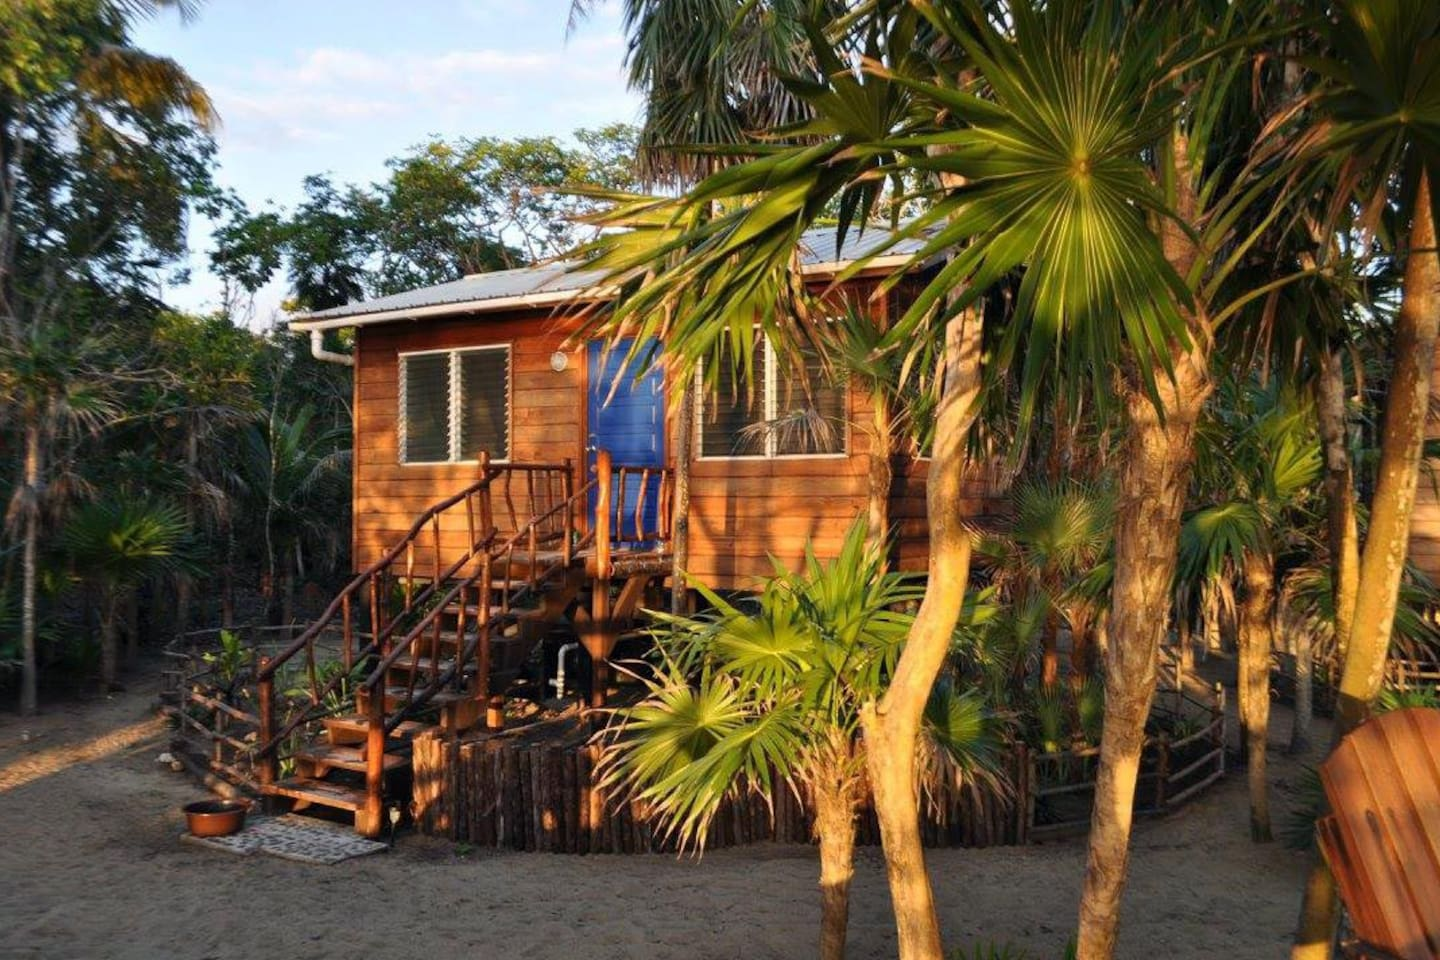 Tucked into the Belize jungle yet steps from the Caribbean Sea, the Bamboo makes the perfect setting for your honeymoon or anniversary.  With access to miles of undeveloped shoreline, you can find your own private beach to celebrate.